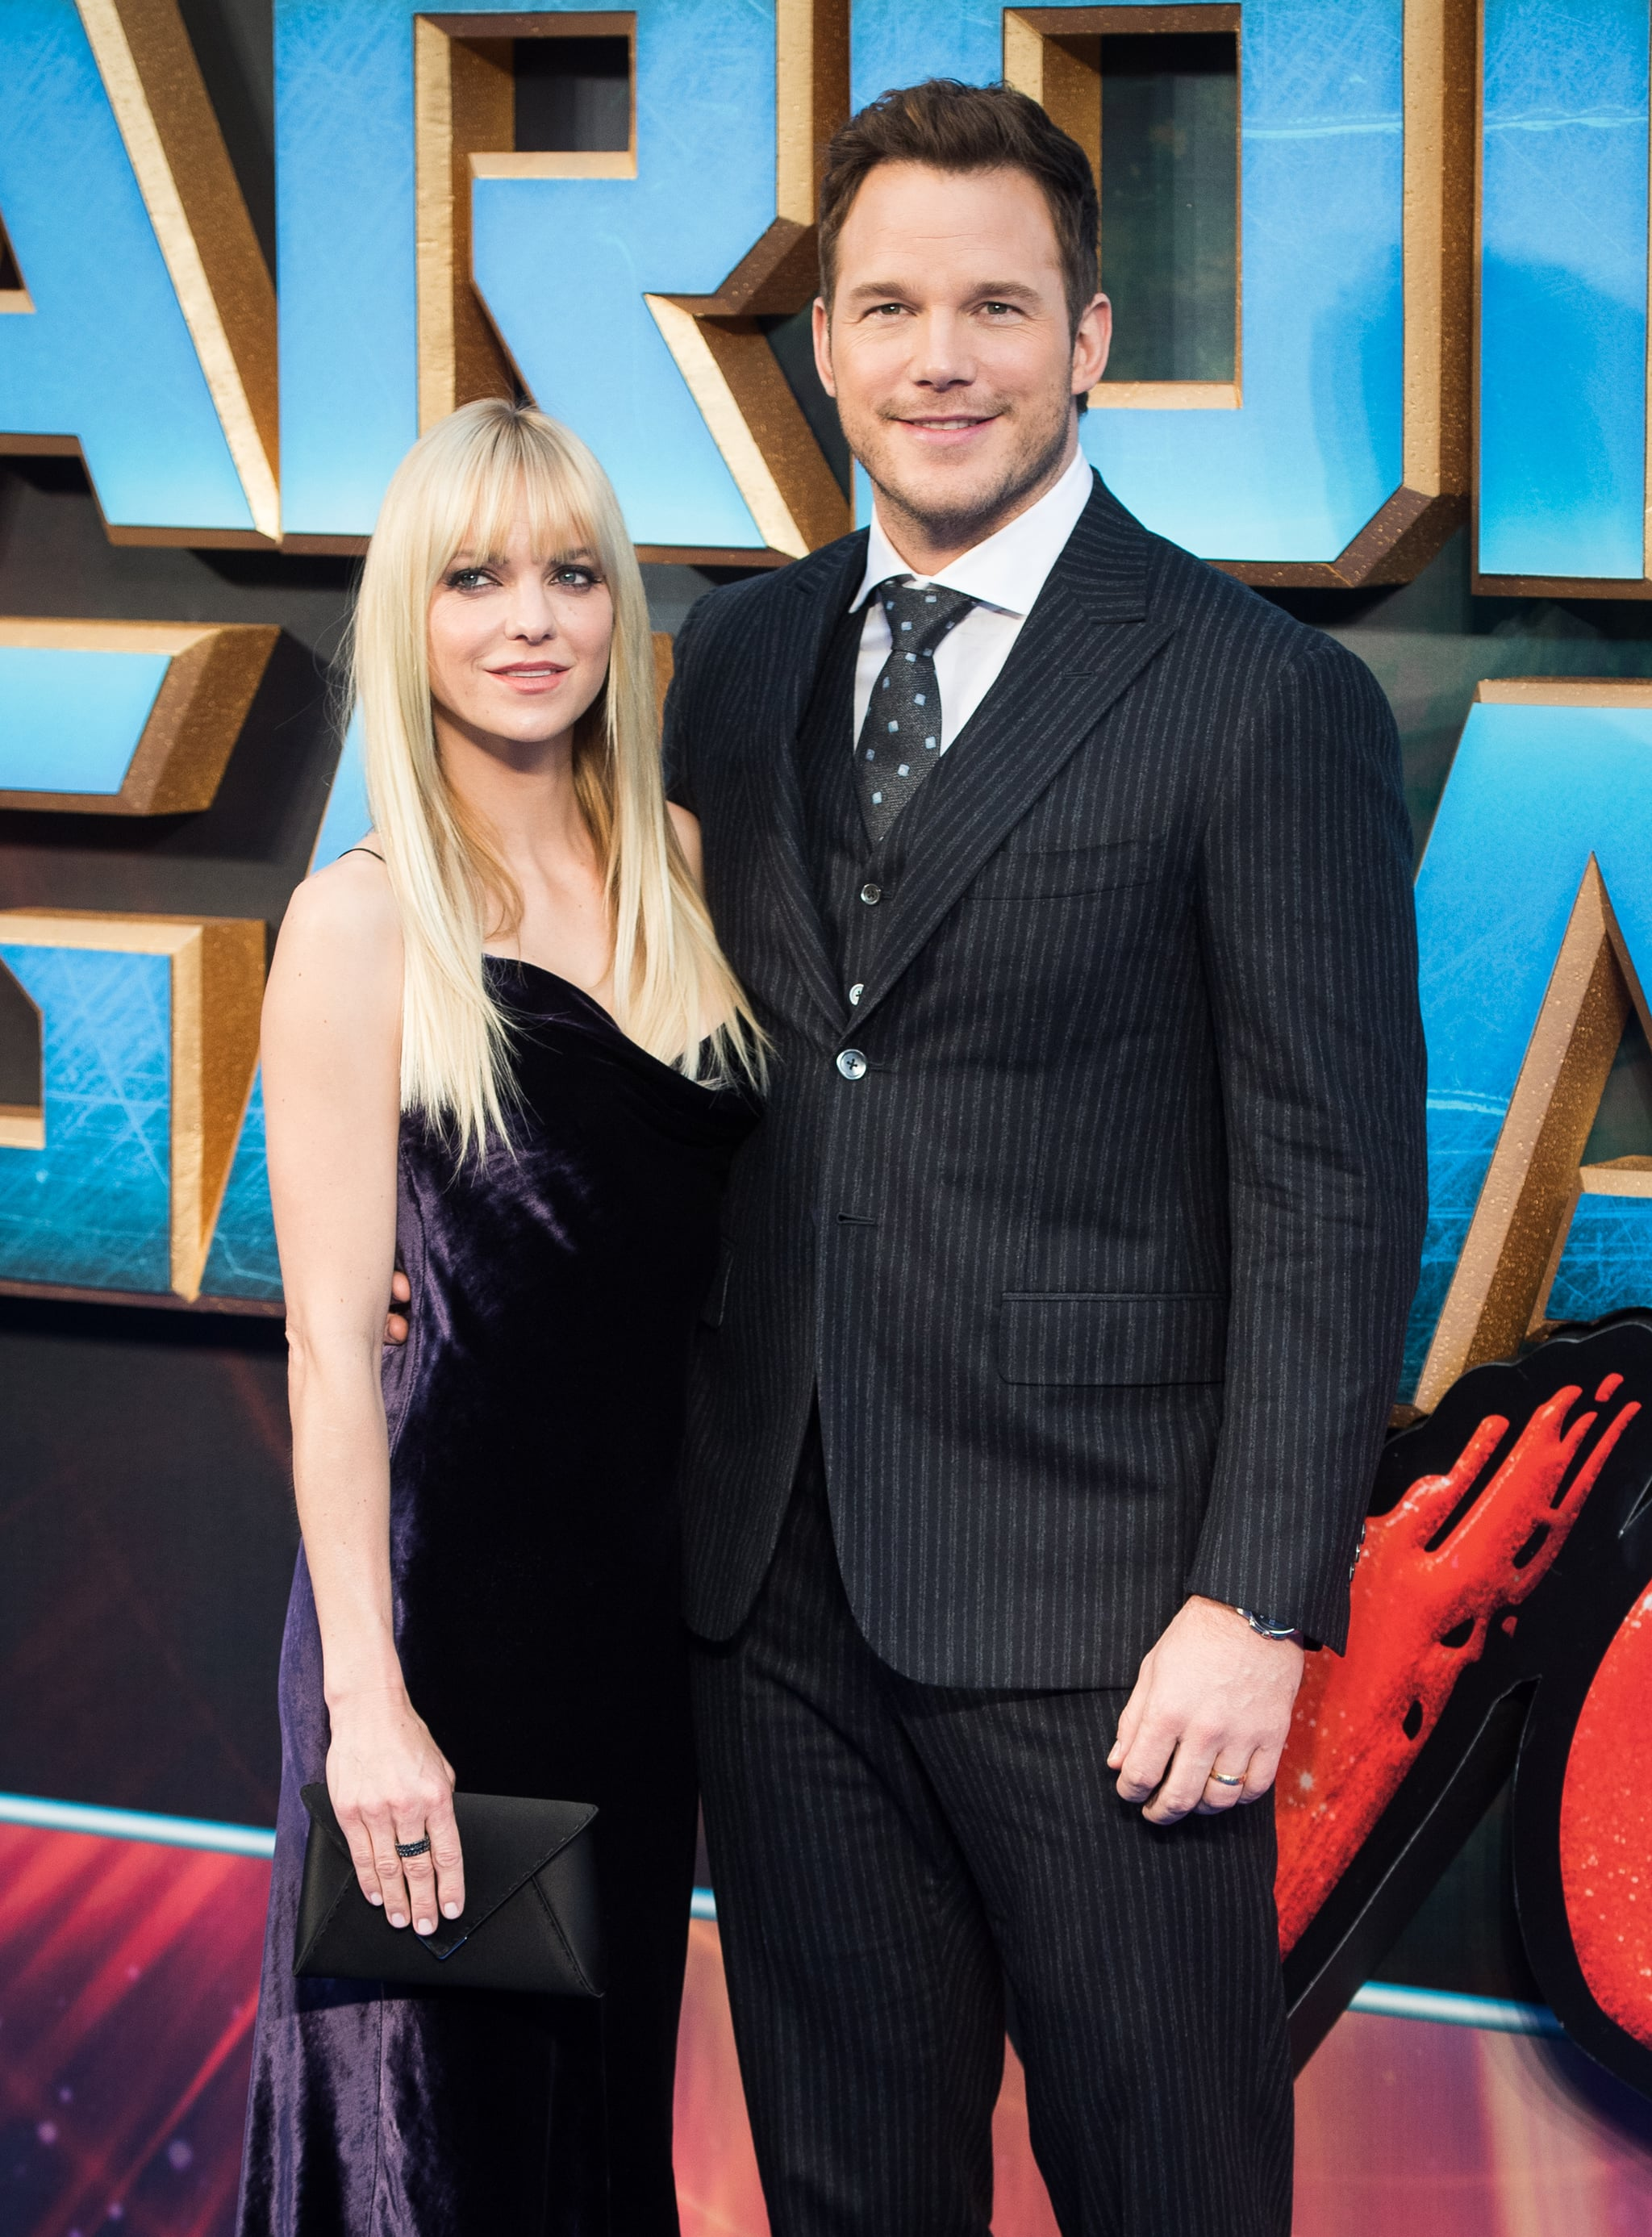 Allegra Rose Edwards anna faris responds to chris pratt's engagement | popsugar